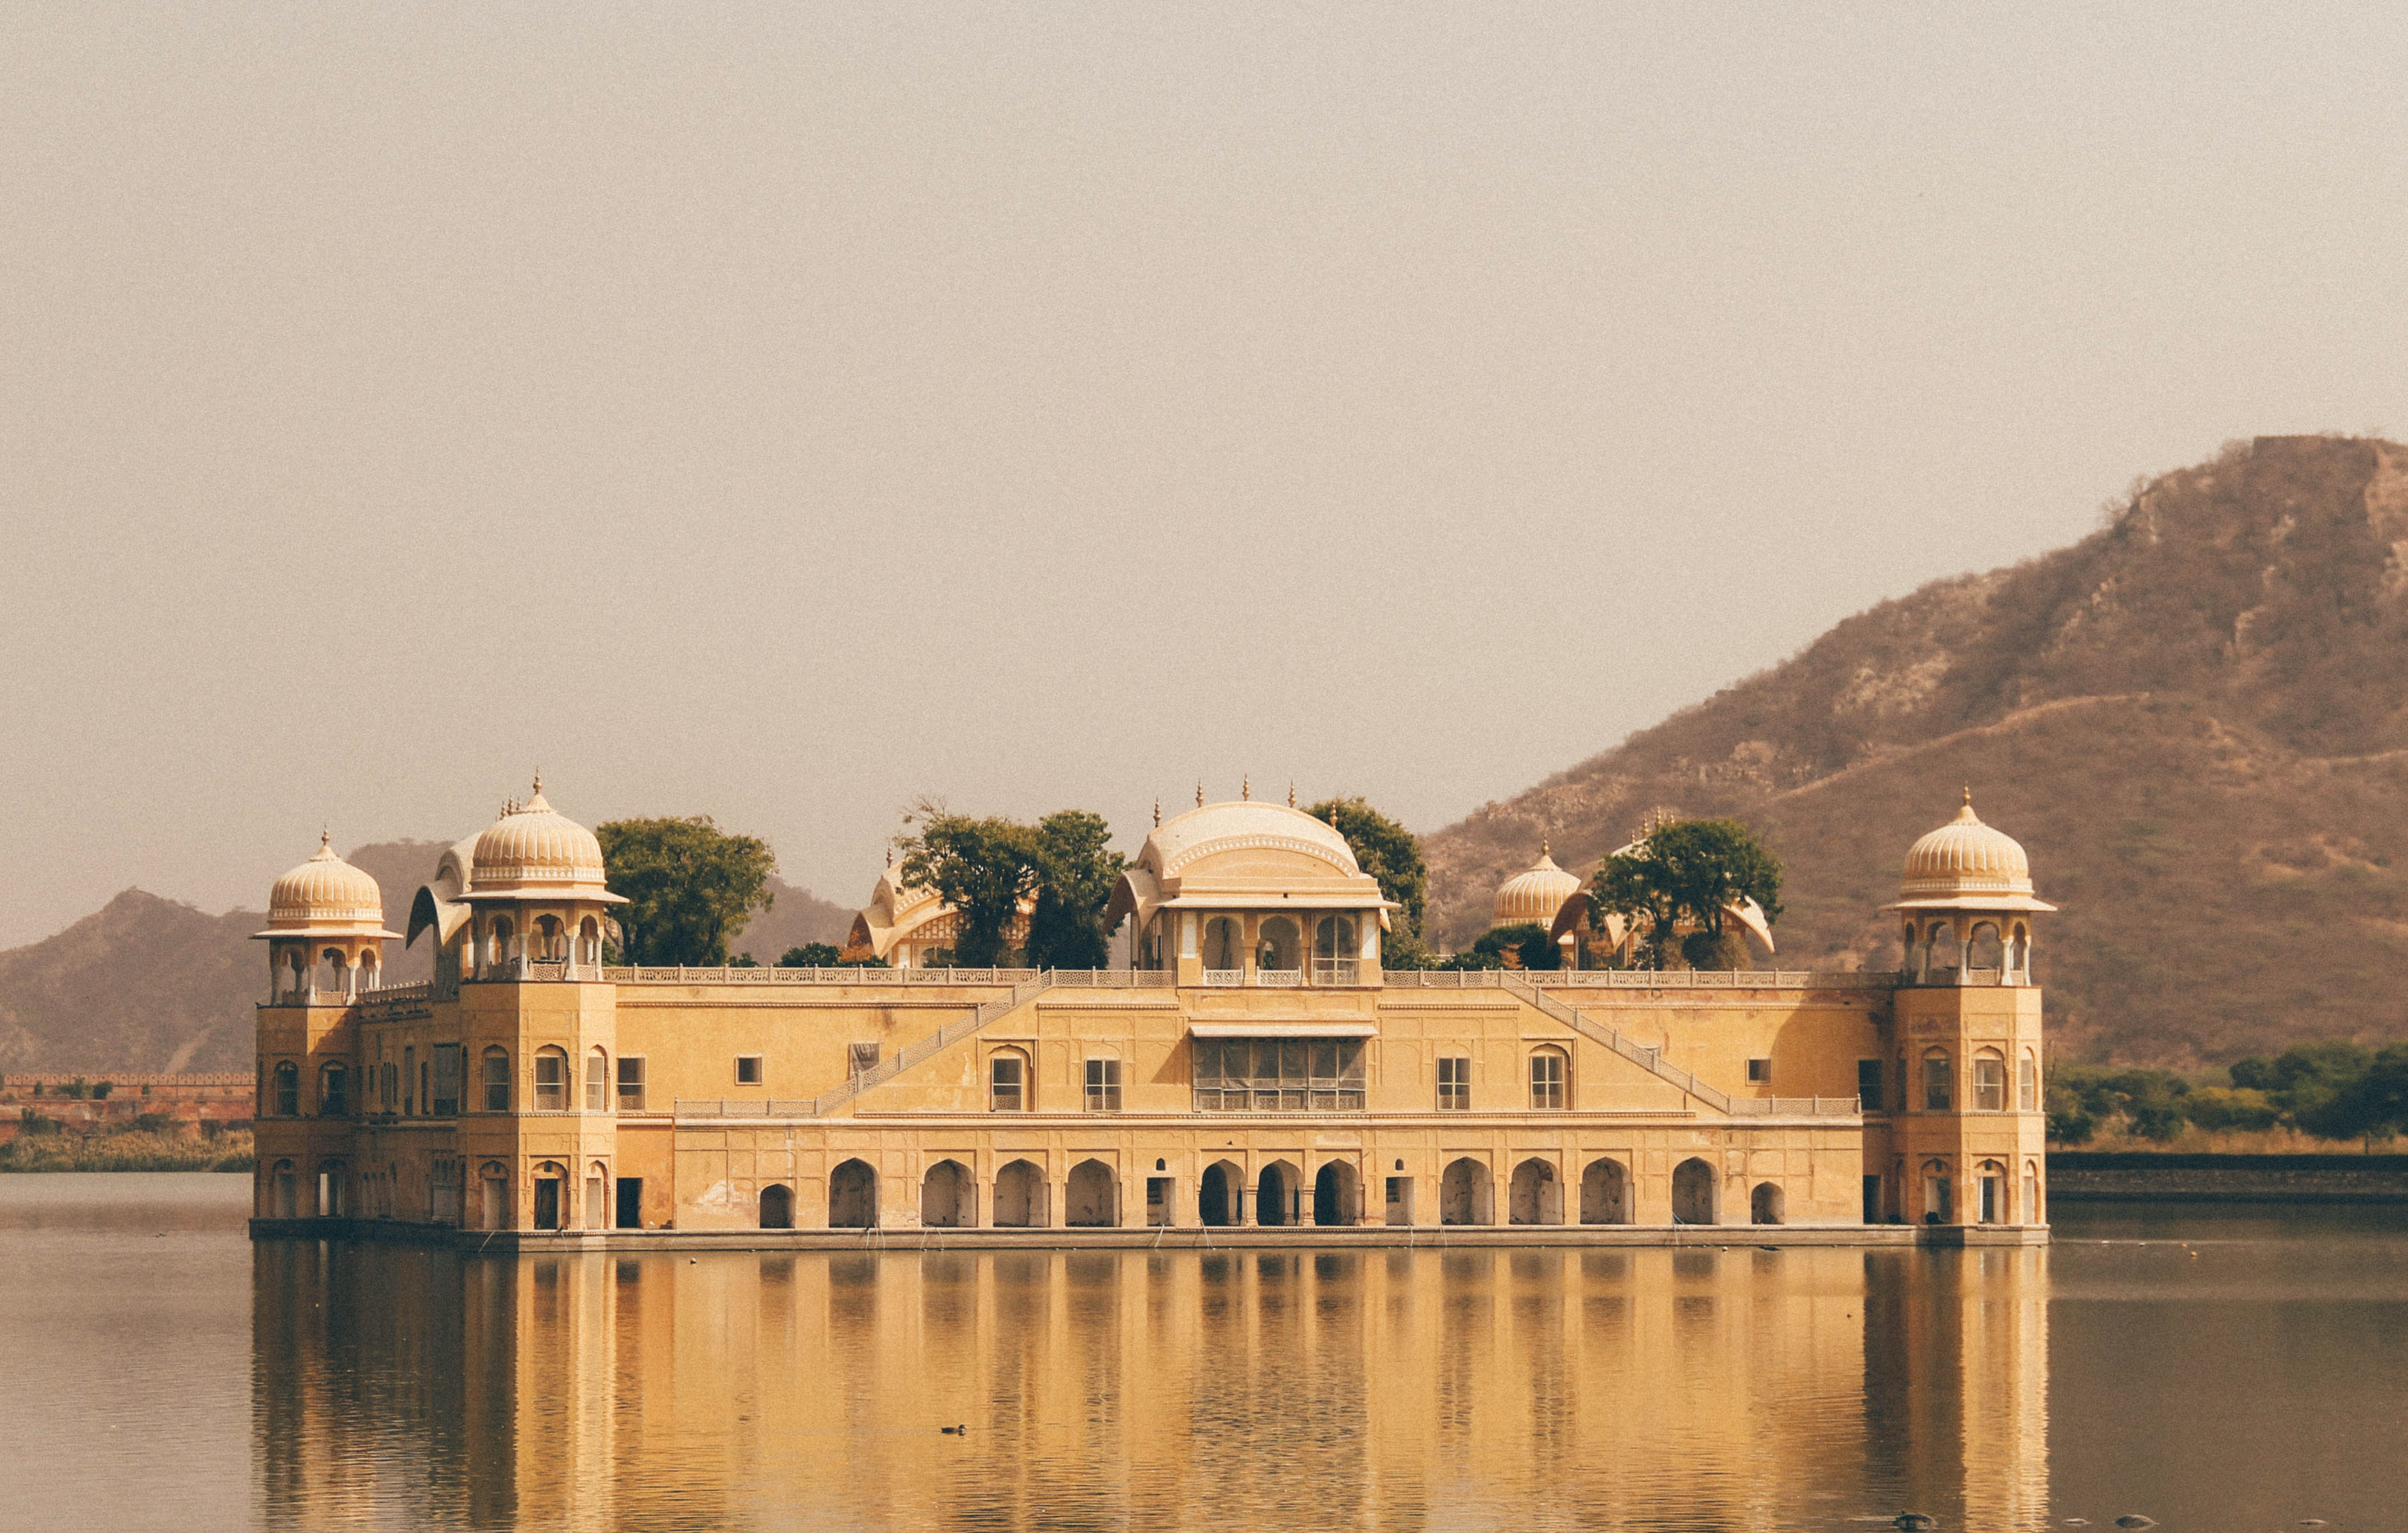 Jaipur - City Of Forts - Pink City